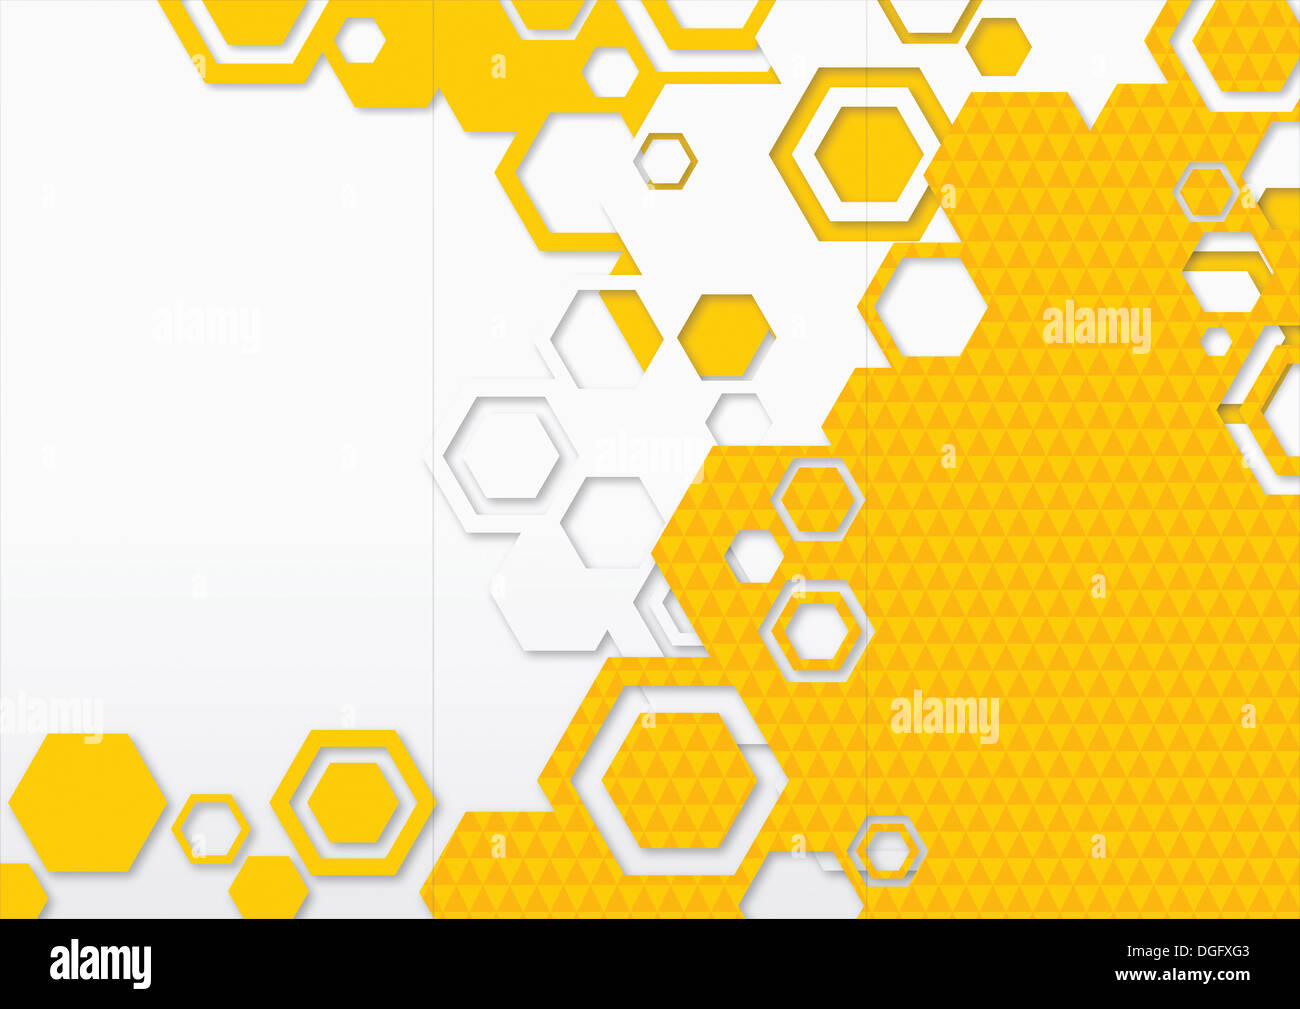 ppt background template design with yellow shapes stock photo